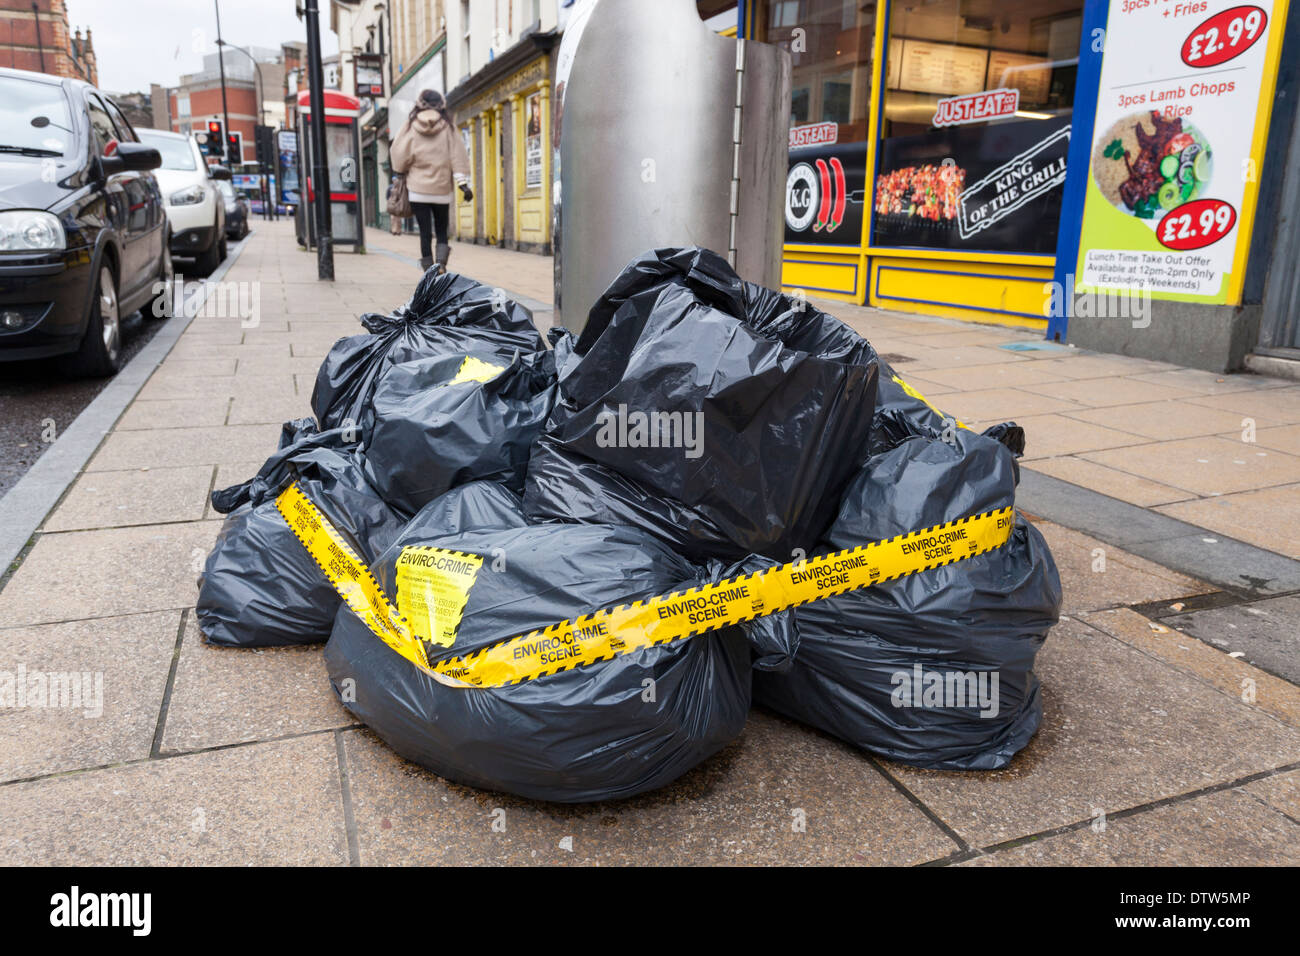 Environmental crime scene. Illegal fly tipping of rubbish bags on a Sheffield city centre street, England, UK - Stock Image